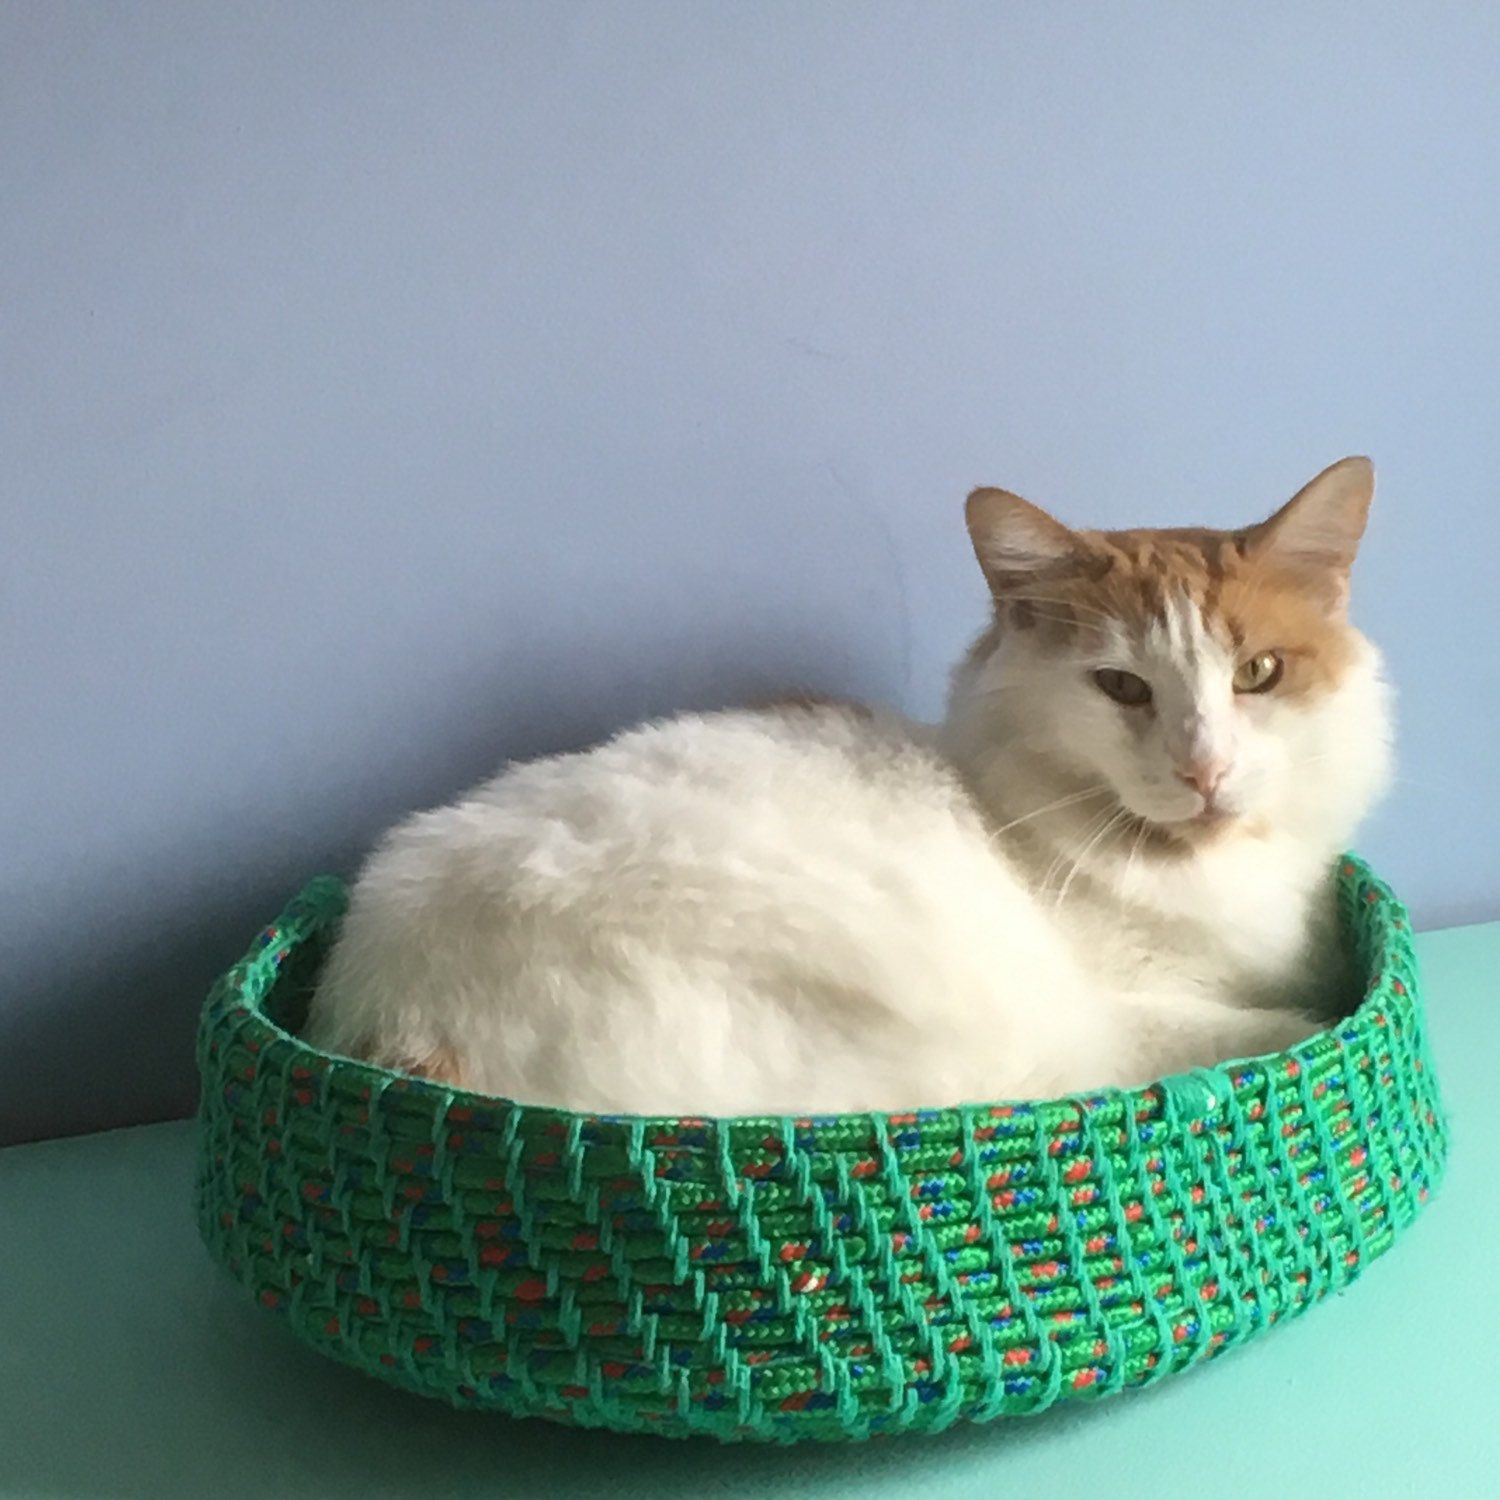 HorsePoweredLasers shared a new photo on Cat bed, Unique